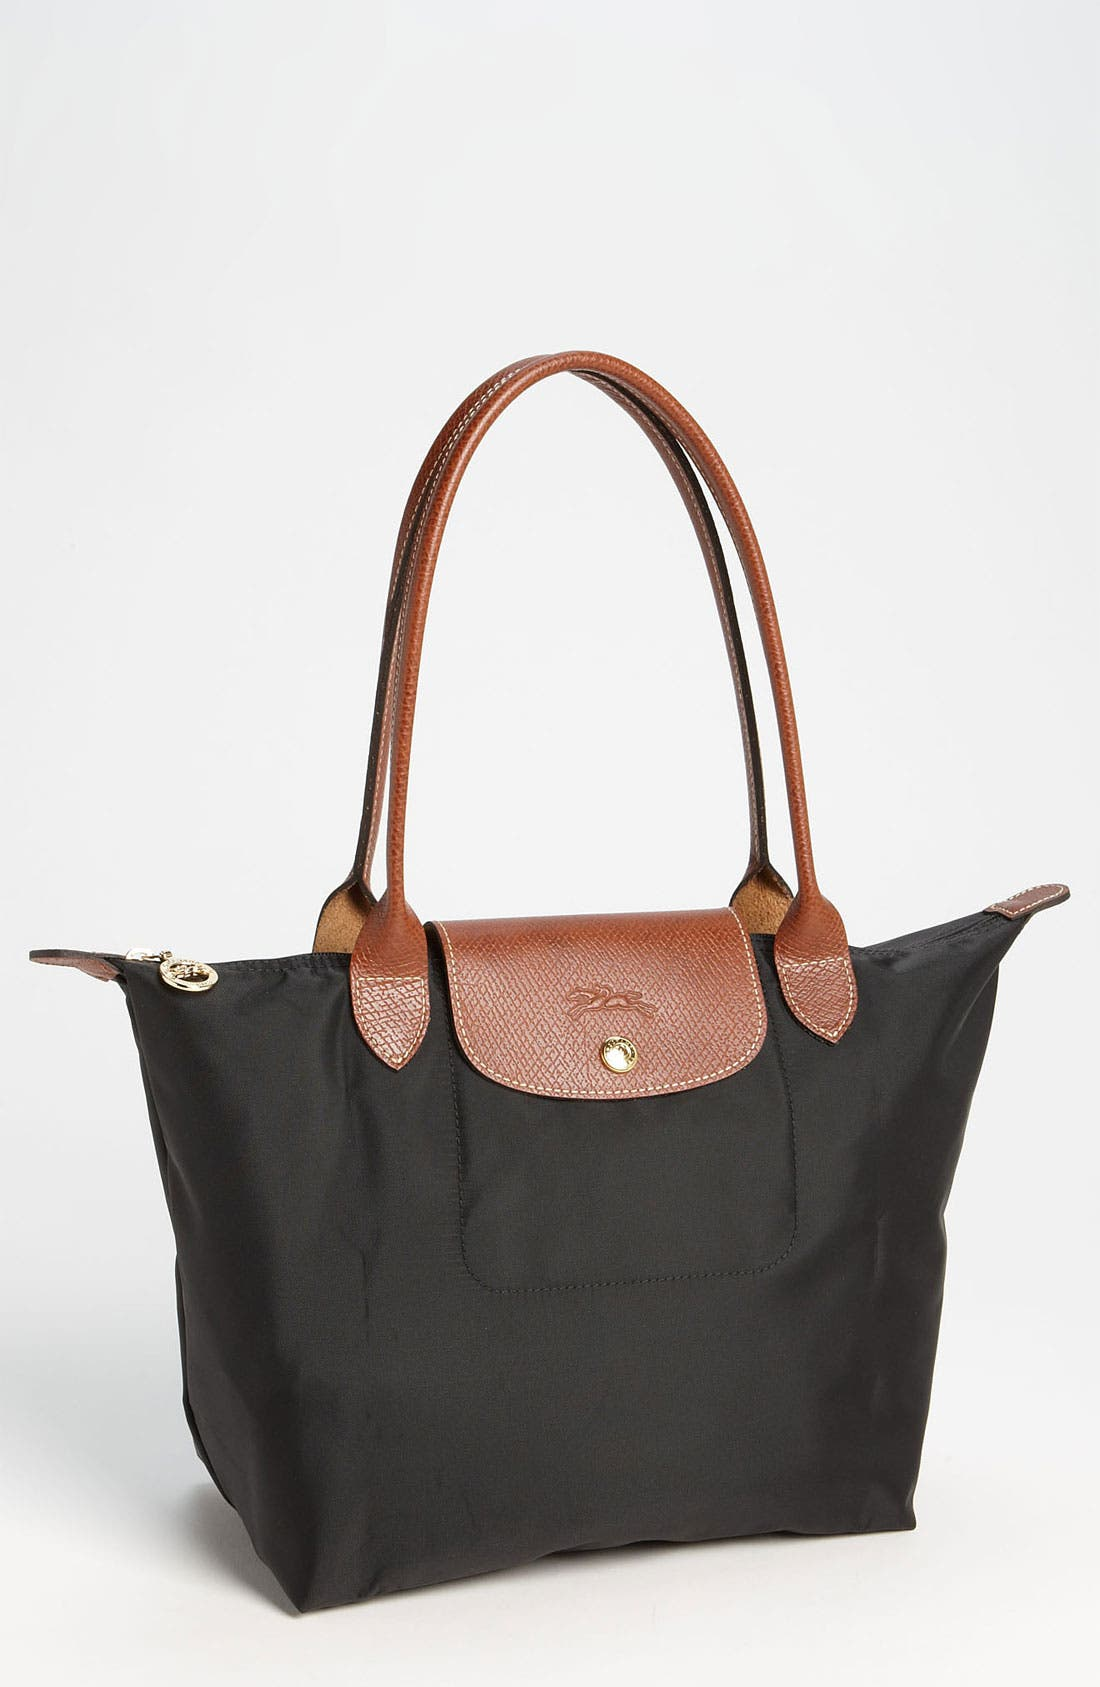 Alternate Image 1 Selected - Longchamp 'Small Le Pliage' Shoulder Tote